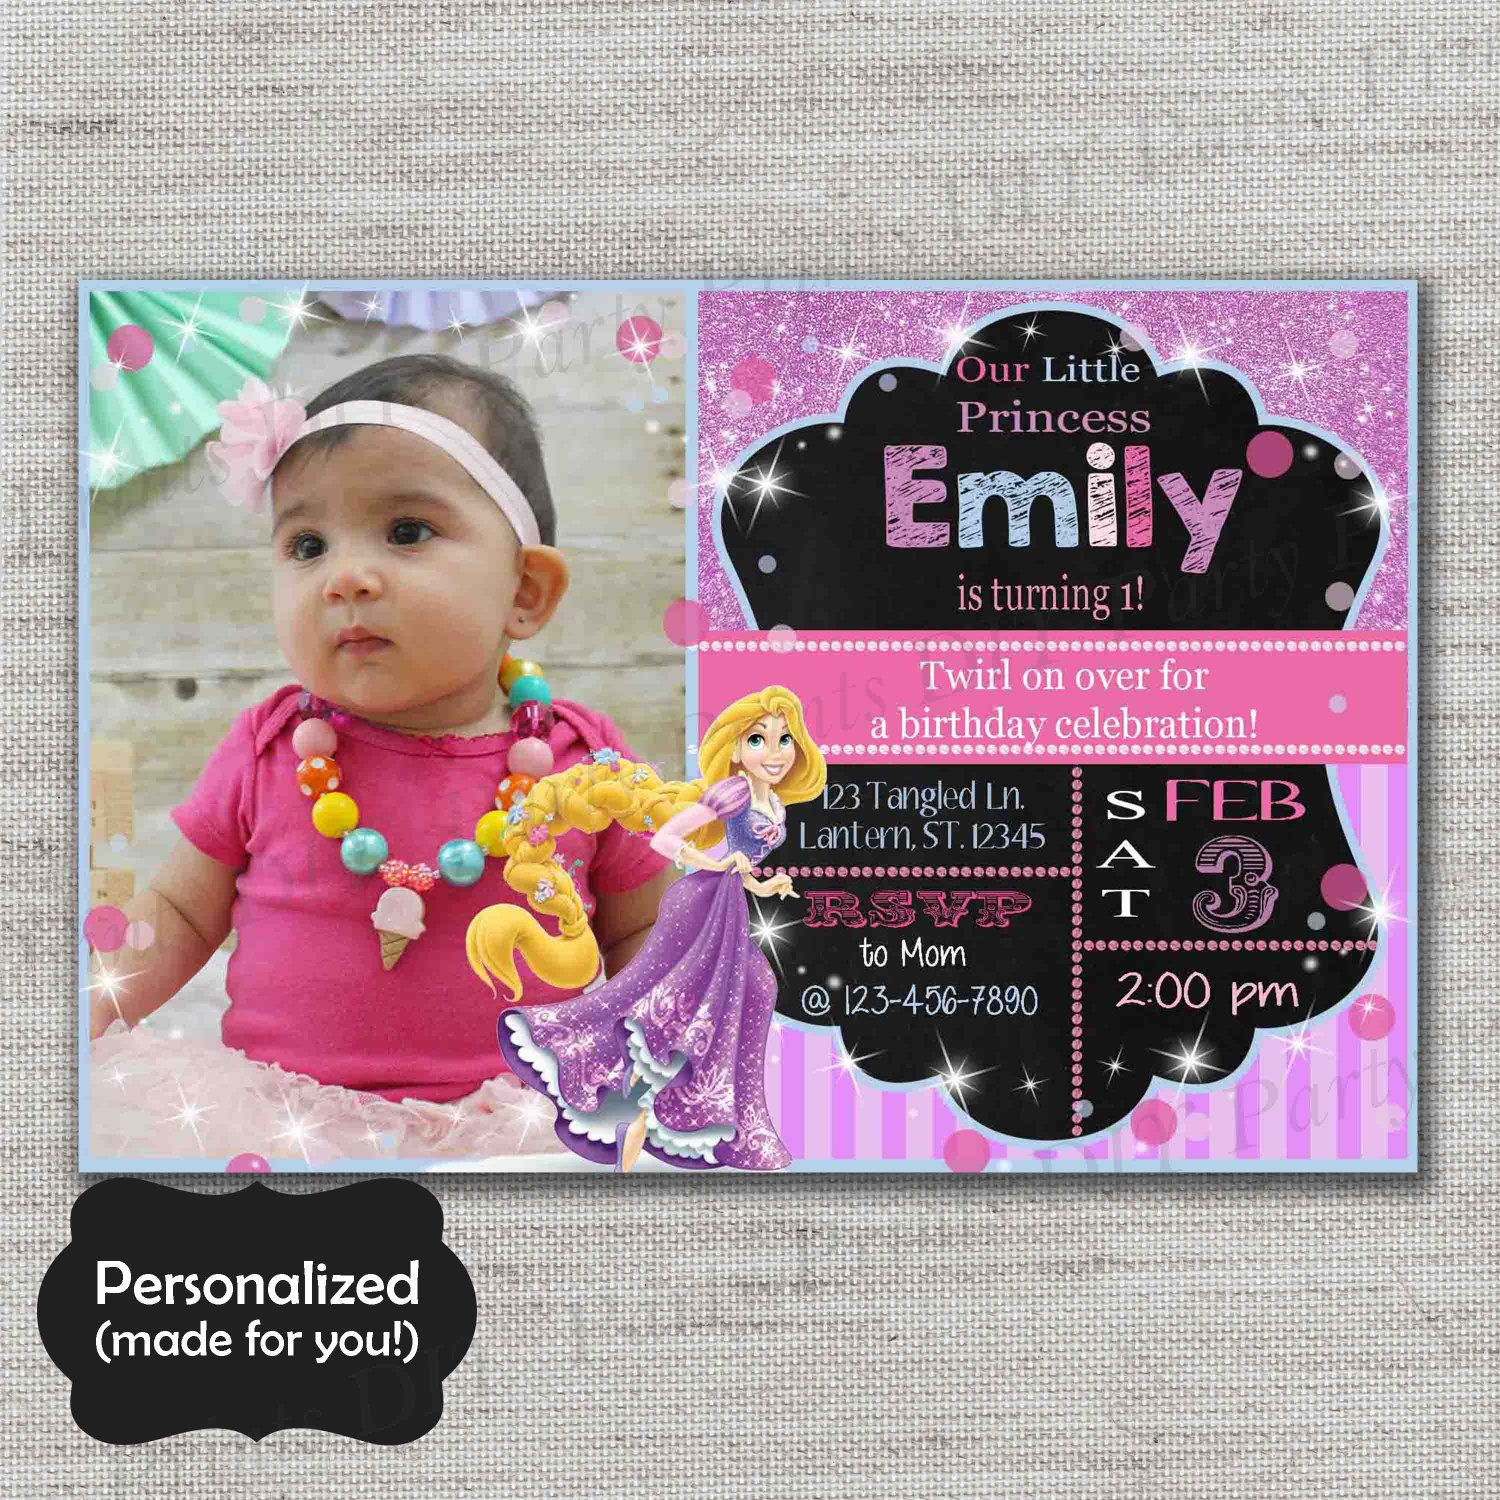 Tangled inviteRapunzel Birthday invitationJPG fileBirthday